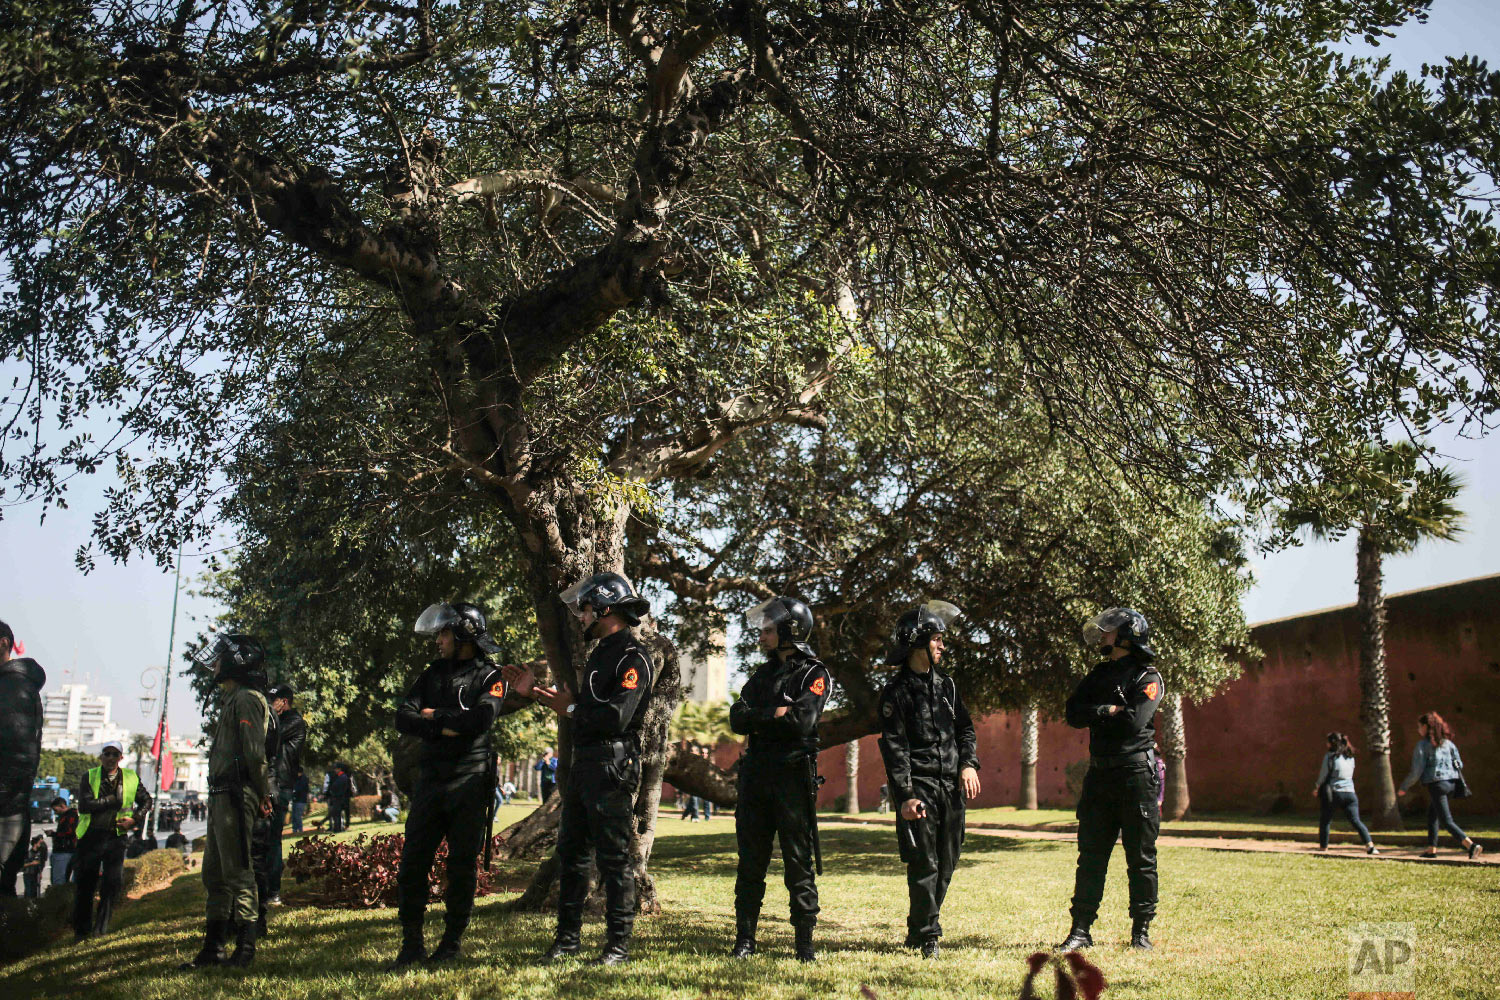 Security forces stand guard as they attempt to disperse a protest in Rabat, Morocco, Feb. 20, 2019. (AP Photo/Mosa'ab Elshamy)